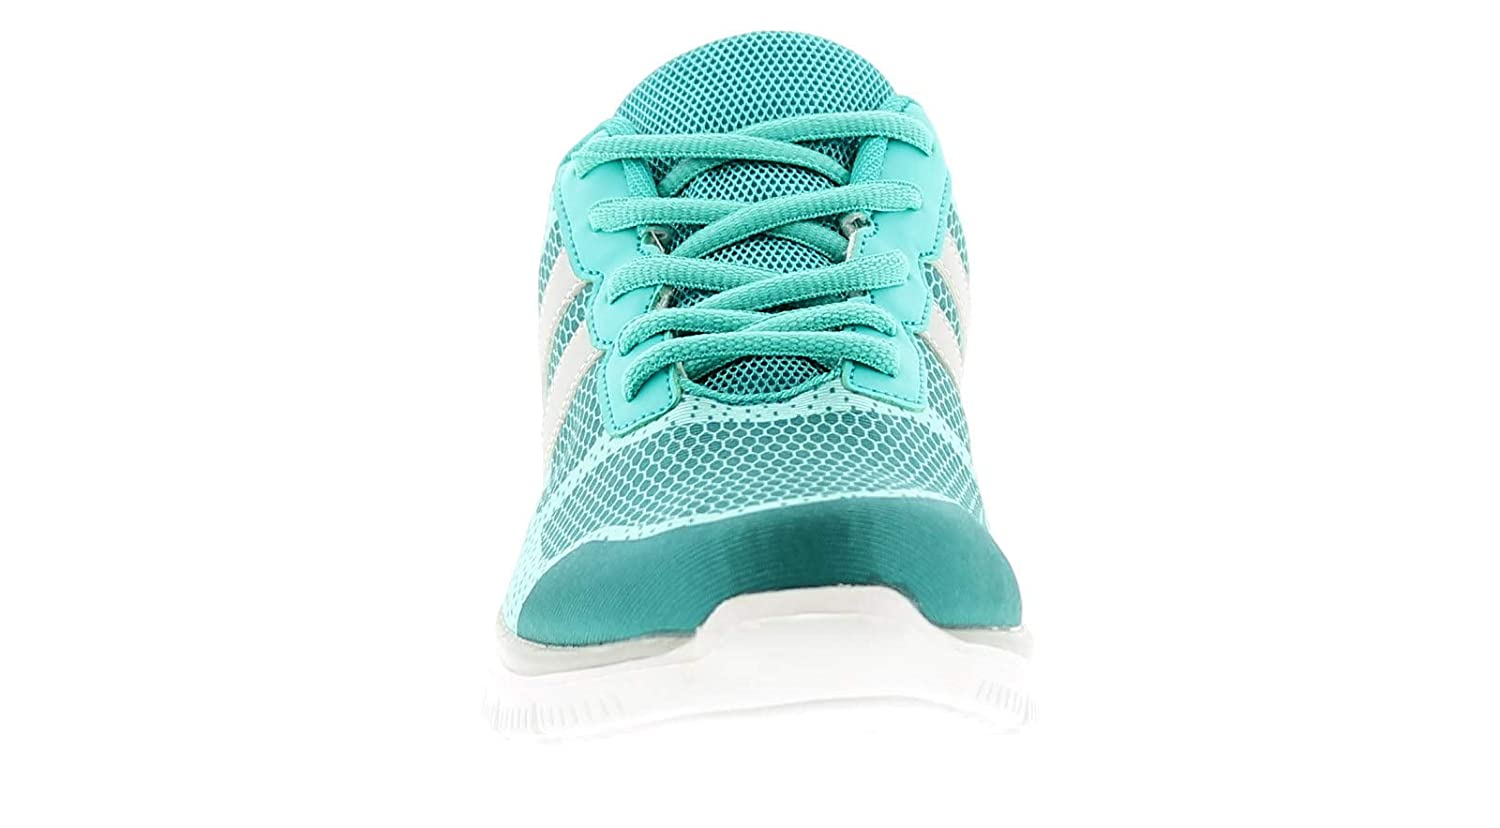 2952b71d Heavenley Feet Jasmine Womens Ladies Trainers - Blue - UK Sizes 3-8: Amazon. co.uk: Shoes & Bags